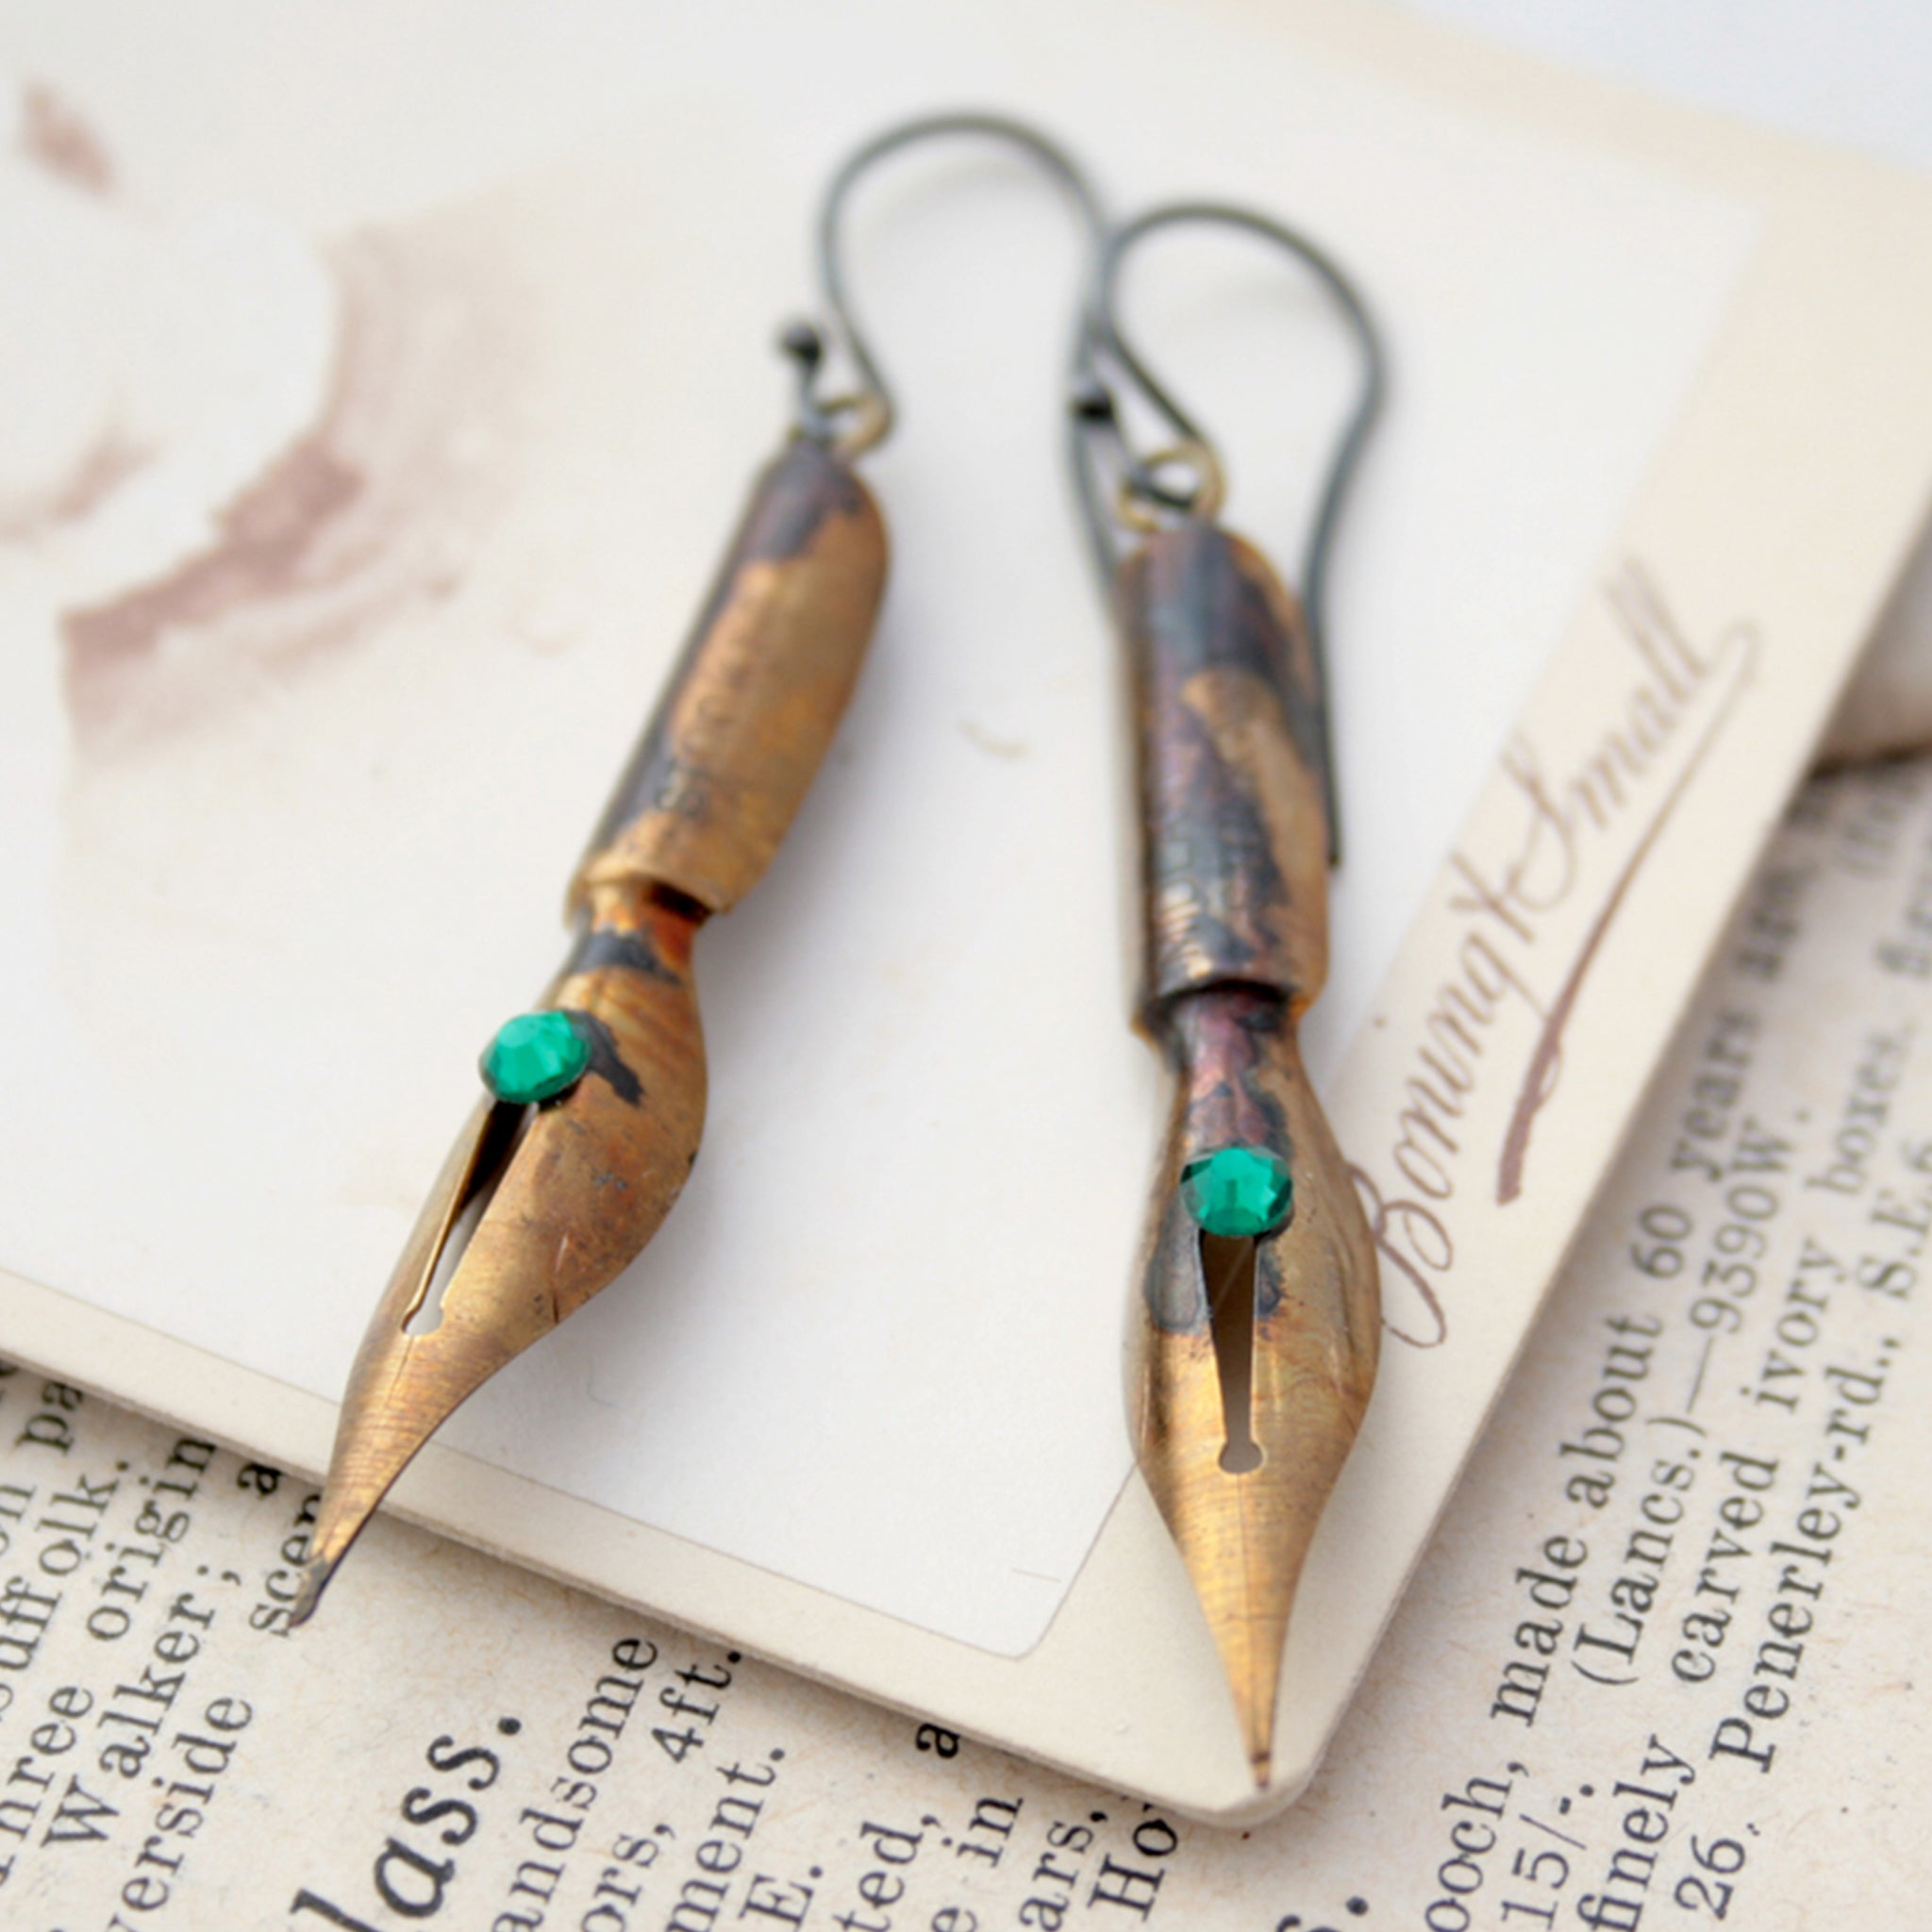 Birthstone Earrings made of antique Gold Pen Nibs